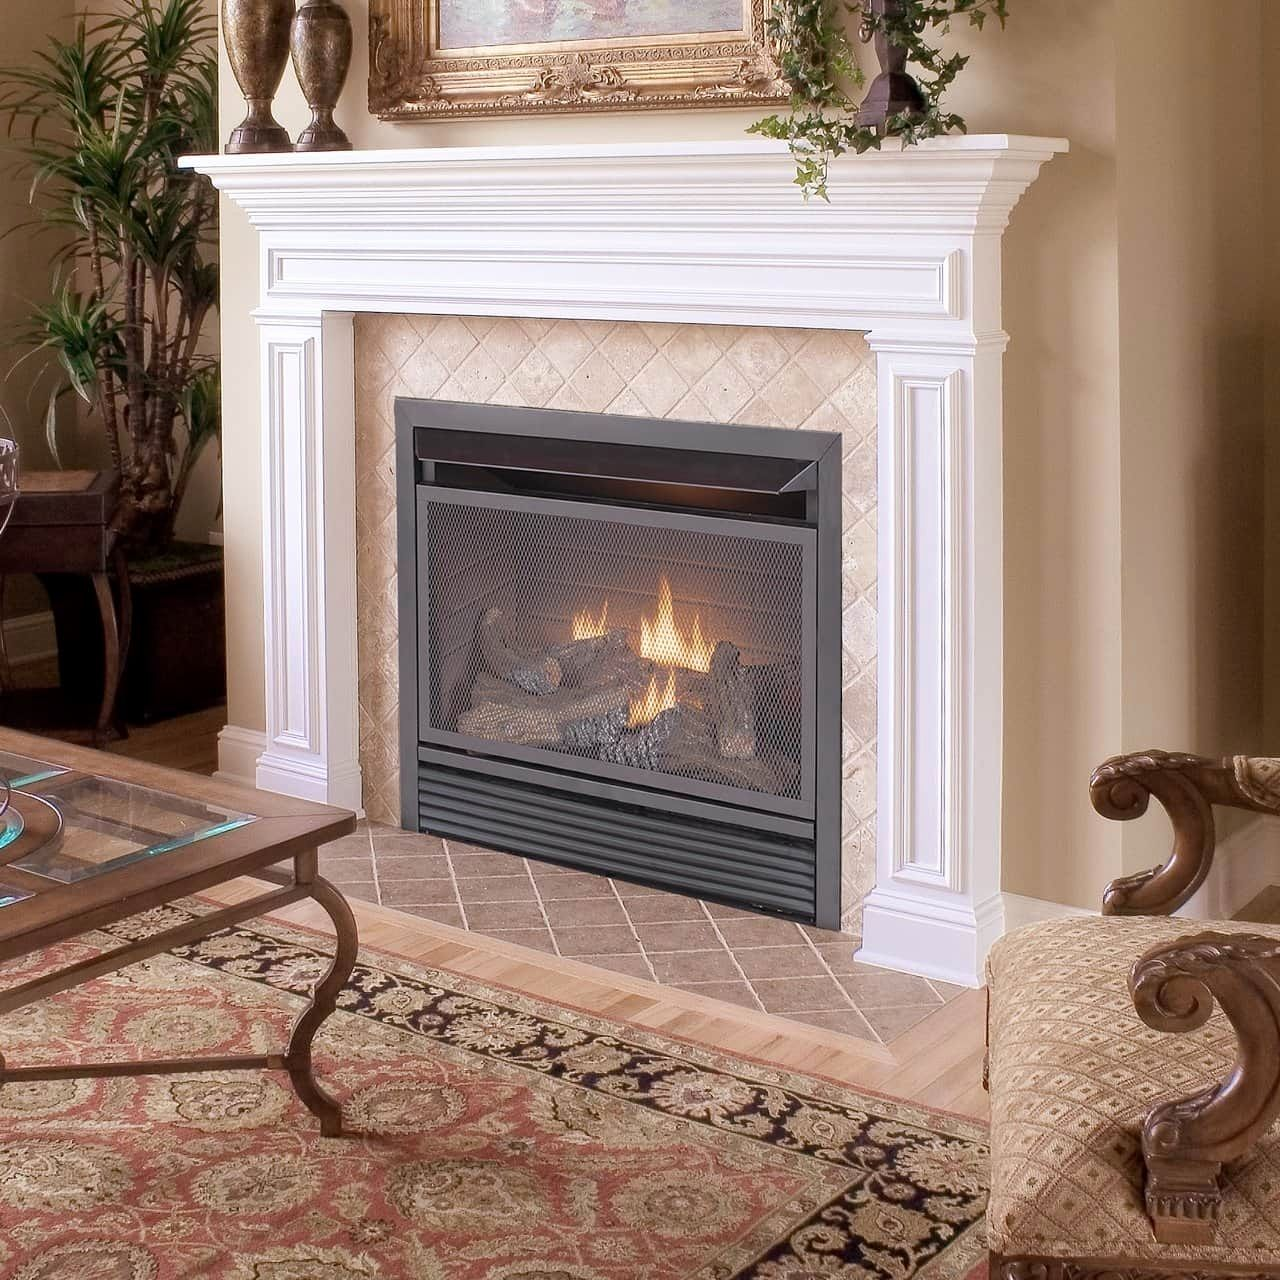 Best Gas Fireplace Inserts Inspirational Best Gas